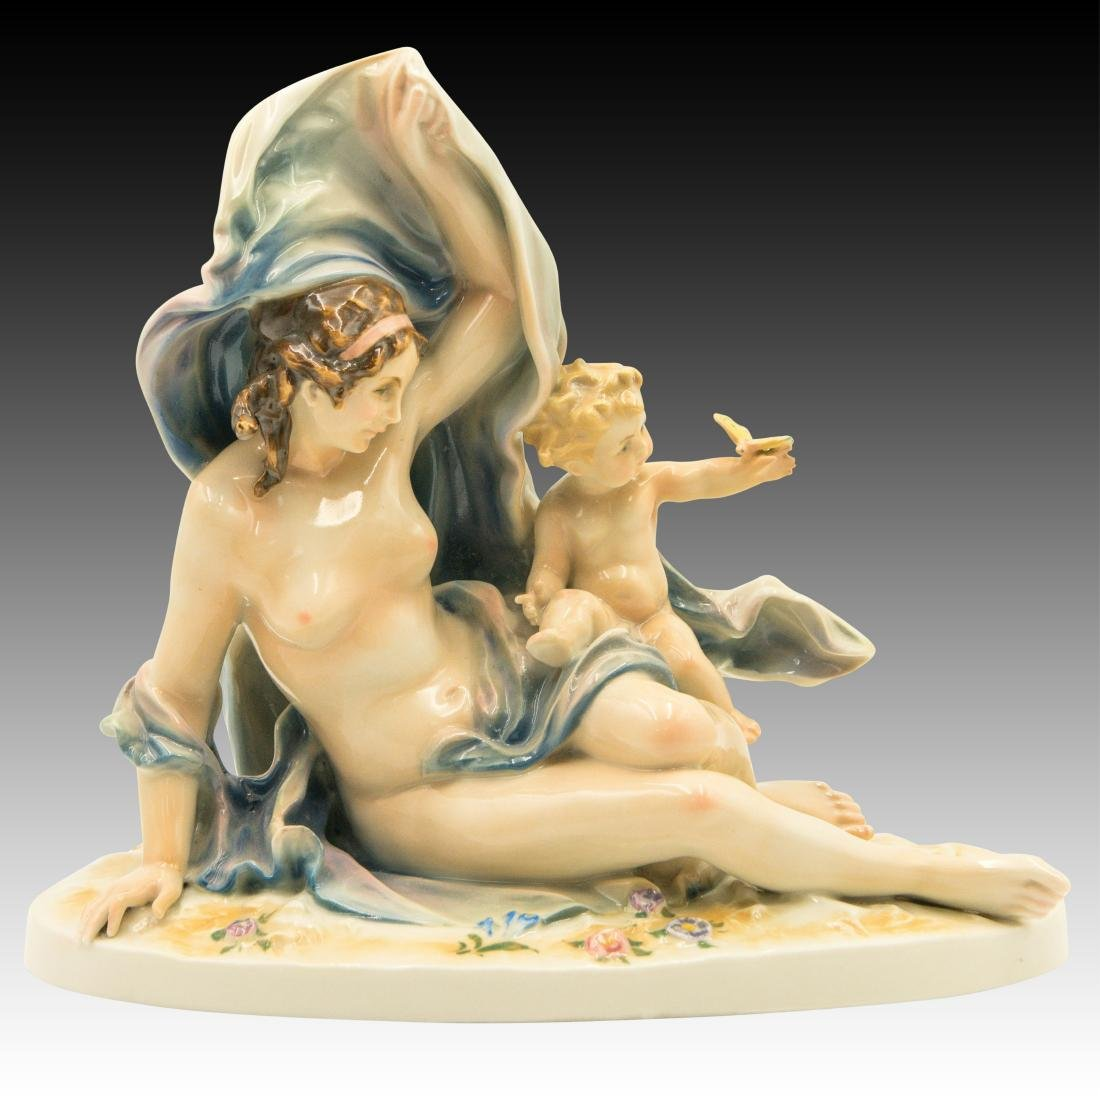 Karl ENS Porcelain Nude Woman with Child Figurine